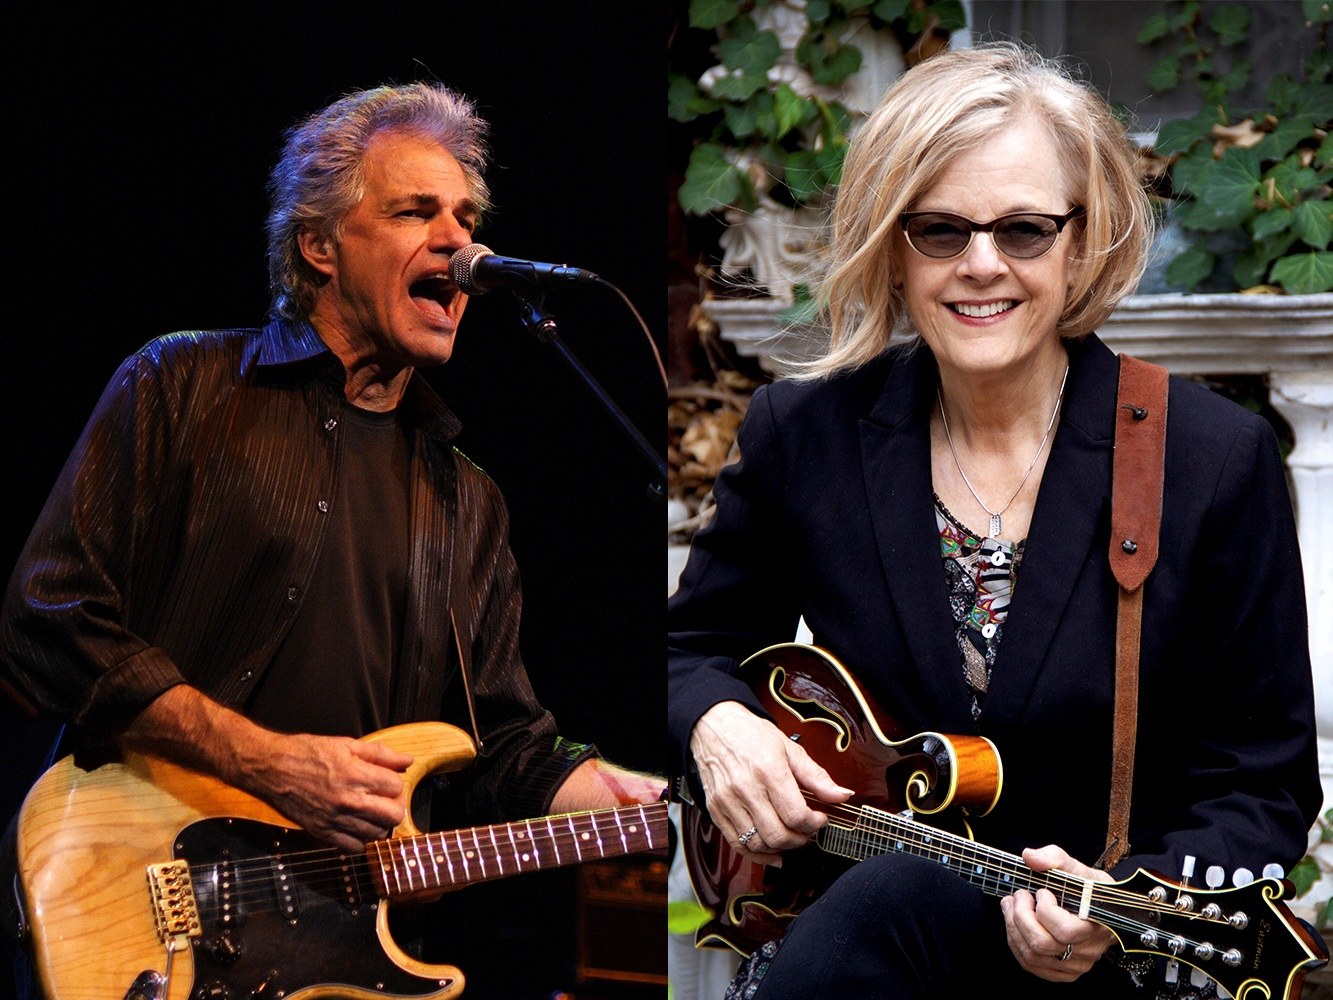 """Canadian Musical Icons: An evening with Shari Ulrich and Bill Henderson - January 25, 2020 - 8pmIn an event celebrating the artistry of some Canada's finest and best-loved songwriters and performers, multiple JUNO-award winner Shari Ulrich joins fellow musical superstar Bill Henderson for an evening of originals, much-loved hits, and newly-penned songs.Joined by their respective daughters - Bill's daughters, singers Saffron and Camille Henderson and Shari's daughter, Julia Graff on violin, mandolin & vocals - as well as iconic West Coast rock and jazz musician Claire Lawrence on saxophone and flute and Vancouver's premier roots rhythm section - Geoff Hicks, drums and Rob Becker, bass - this is a 'family celebration' of national musical treasures not to be missed by any music lover.""""I jump at any chance to share a stage with Bill - one of my favourite humans and musicians! And the fact that we can surround ourselves with our talented daughters and favourite players (particularly Claire Lawrence who remains a huge part of both of our musical lives) is going to make it a brilliantly special evening for all."""" – Shari Ulrich"""